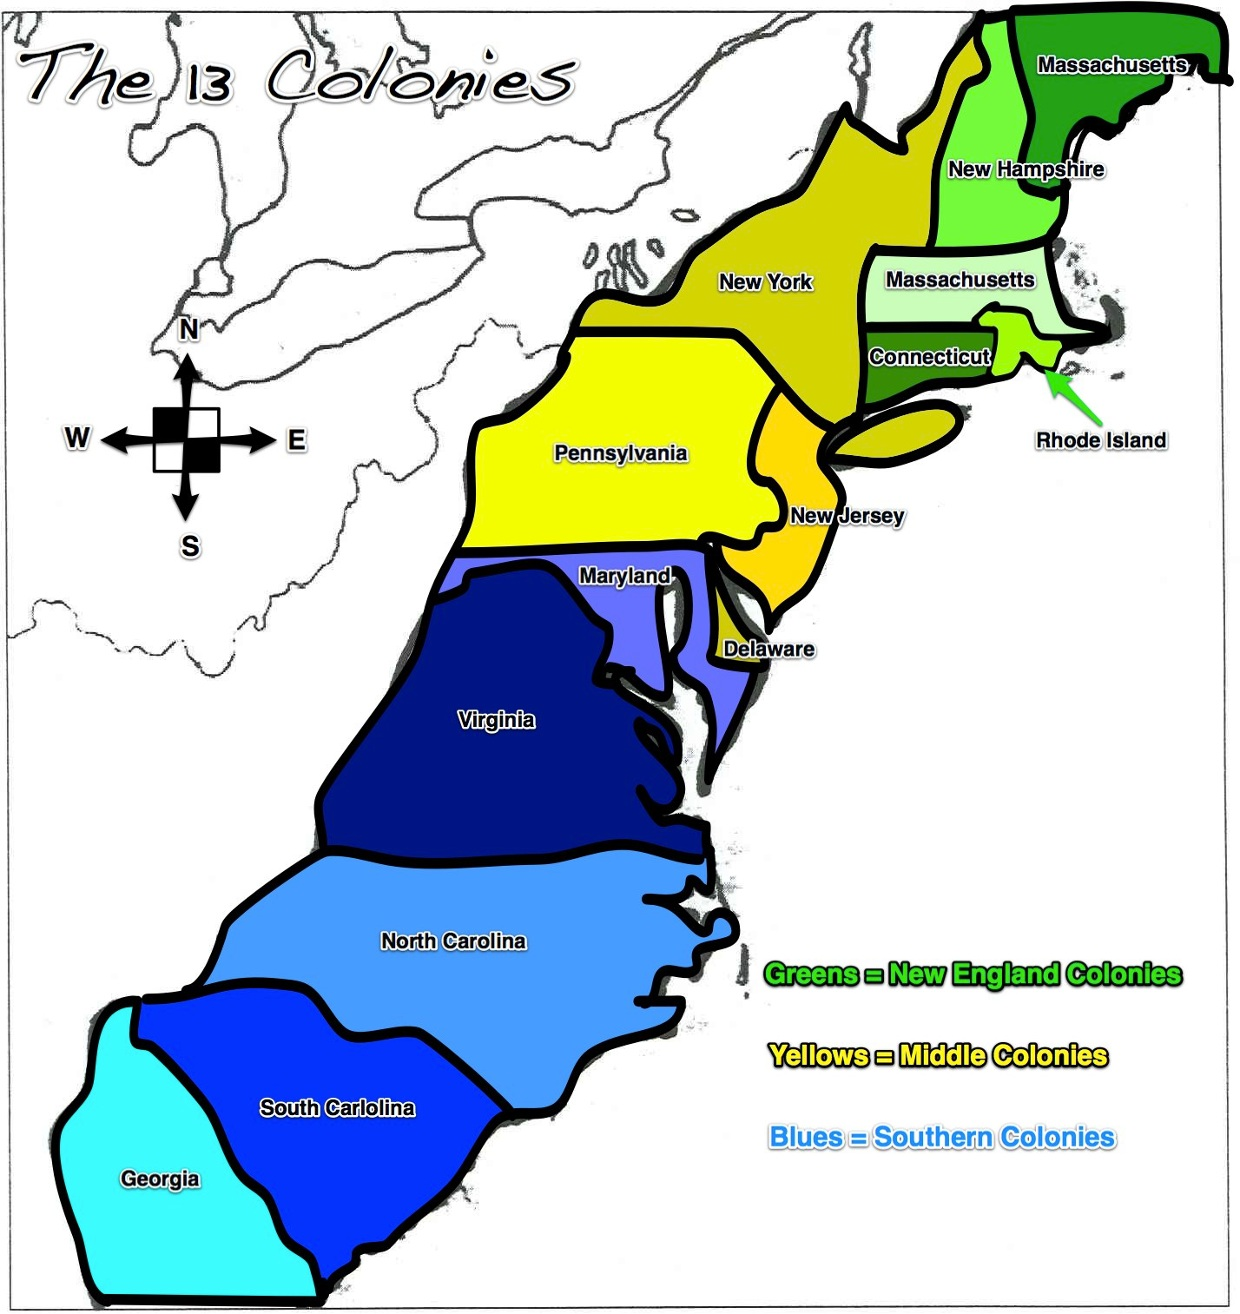 The Georgia Colony Was One Of The Original Colonies Lo - Georgia map 13 colonies